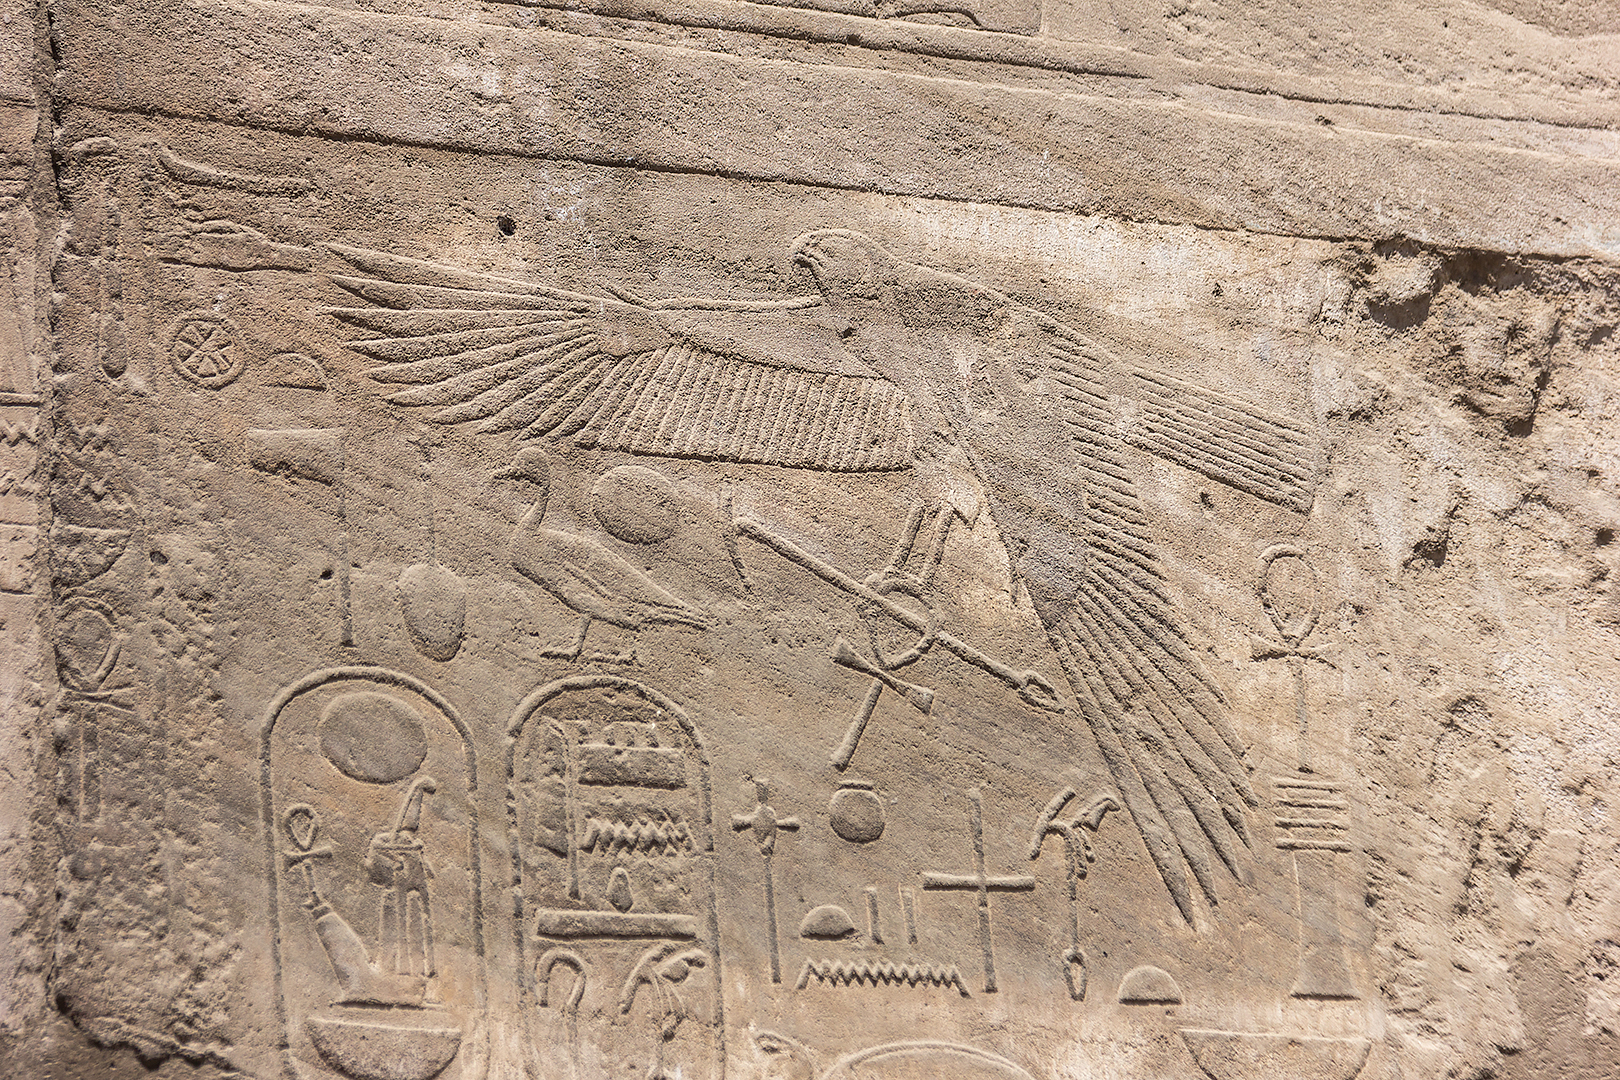 Inscriptions in the ruins of Luxor temple